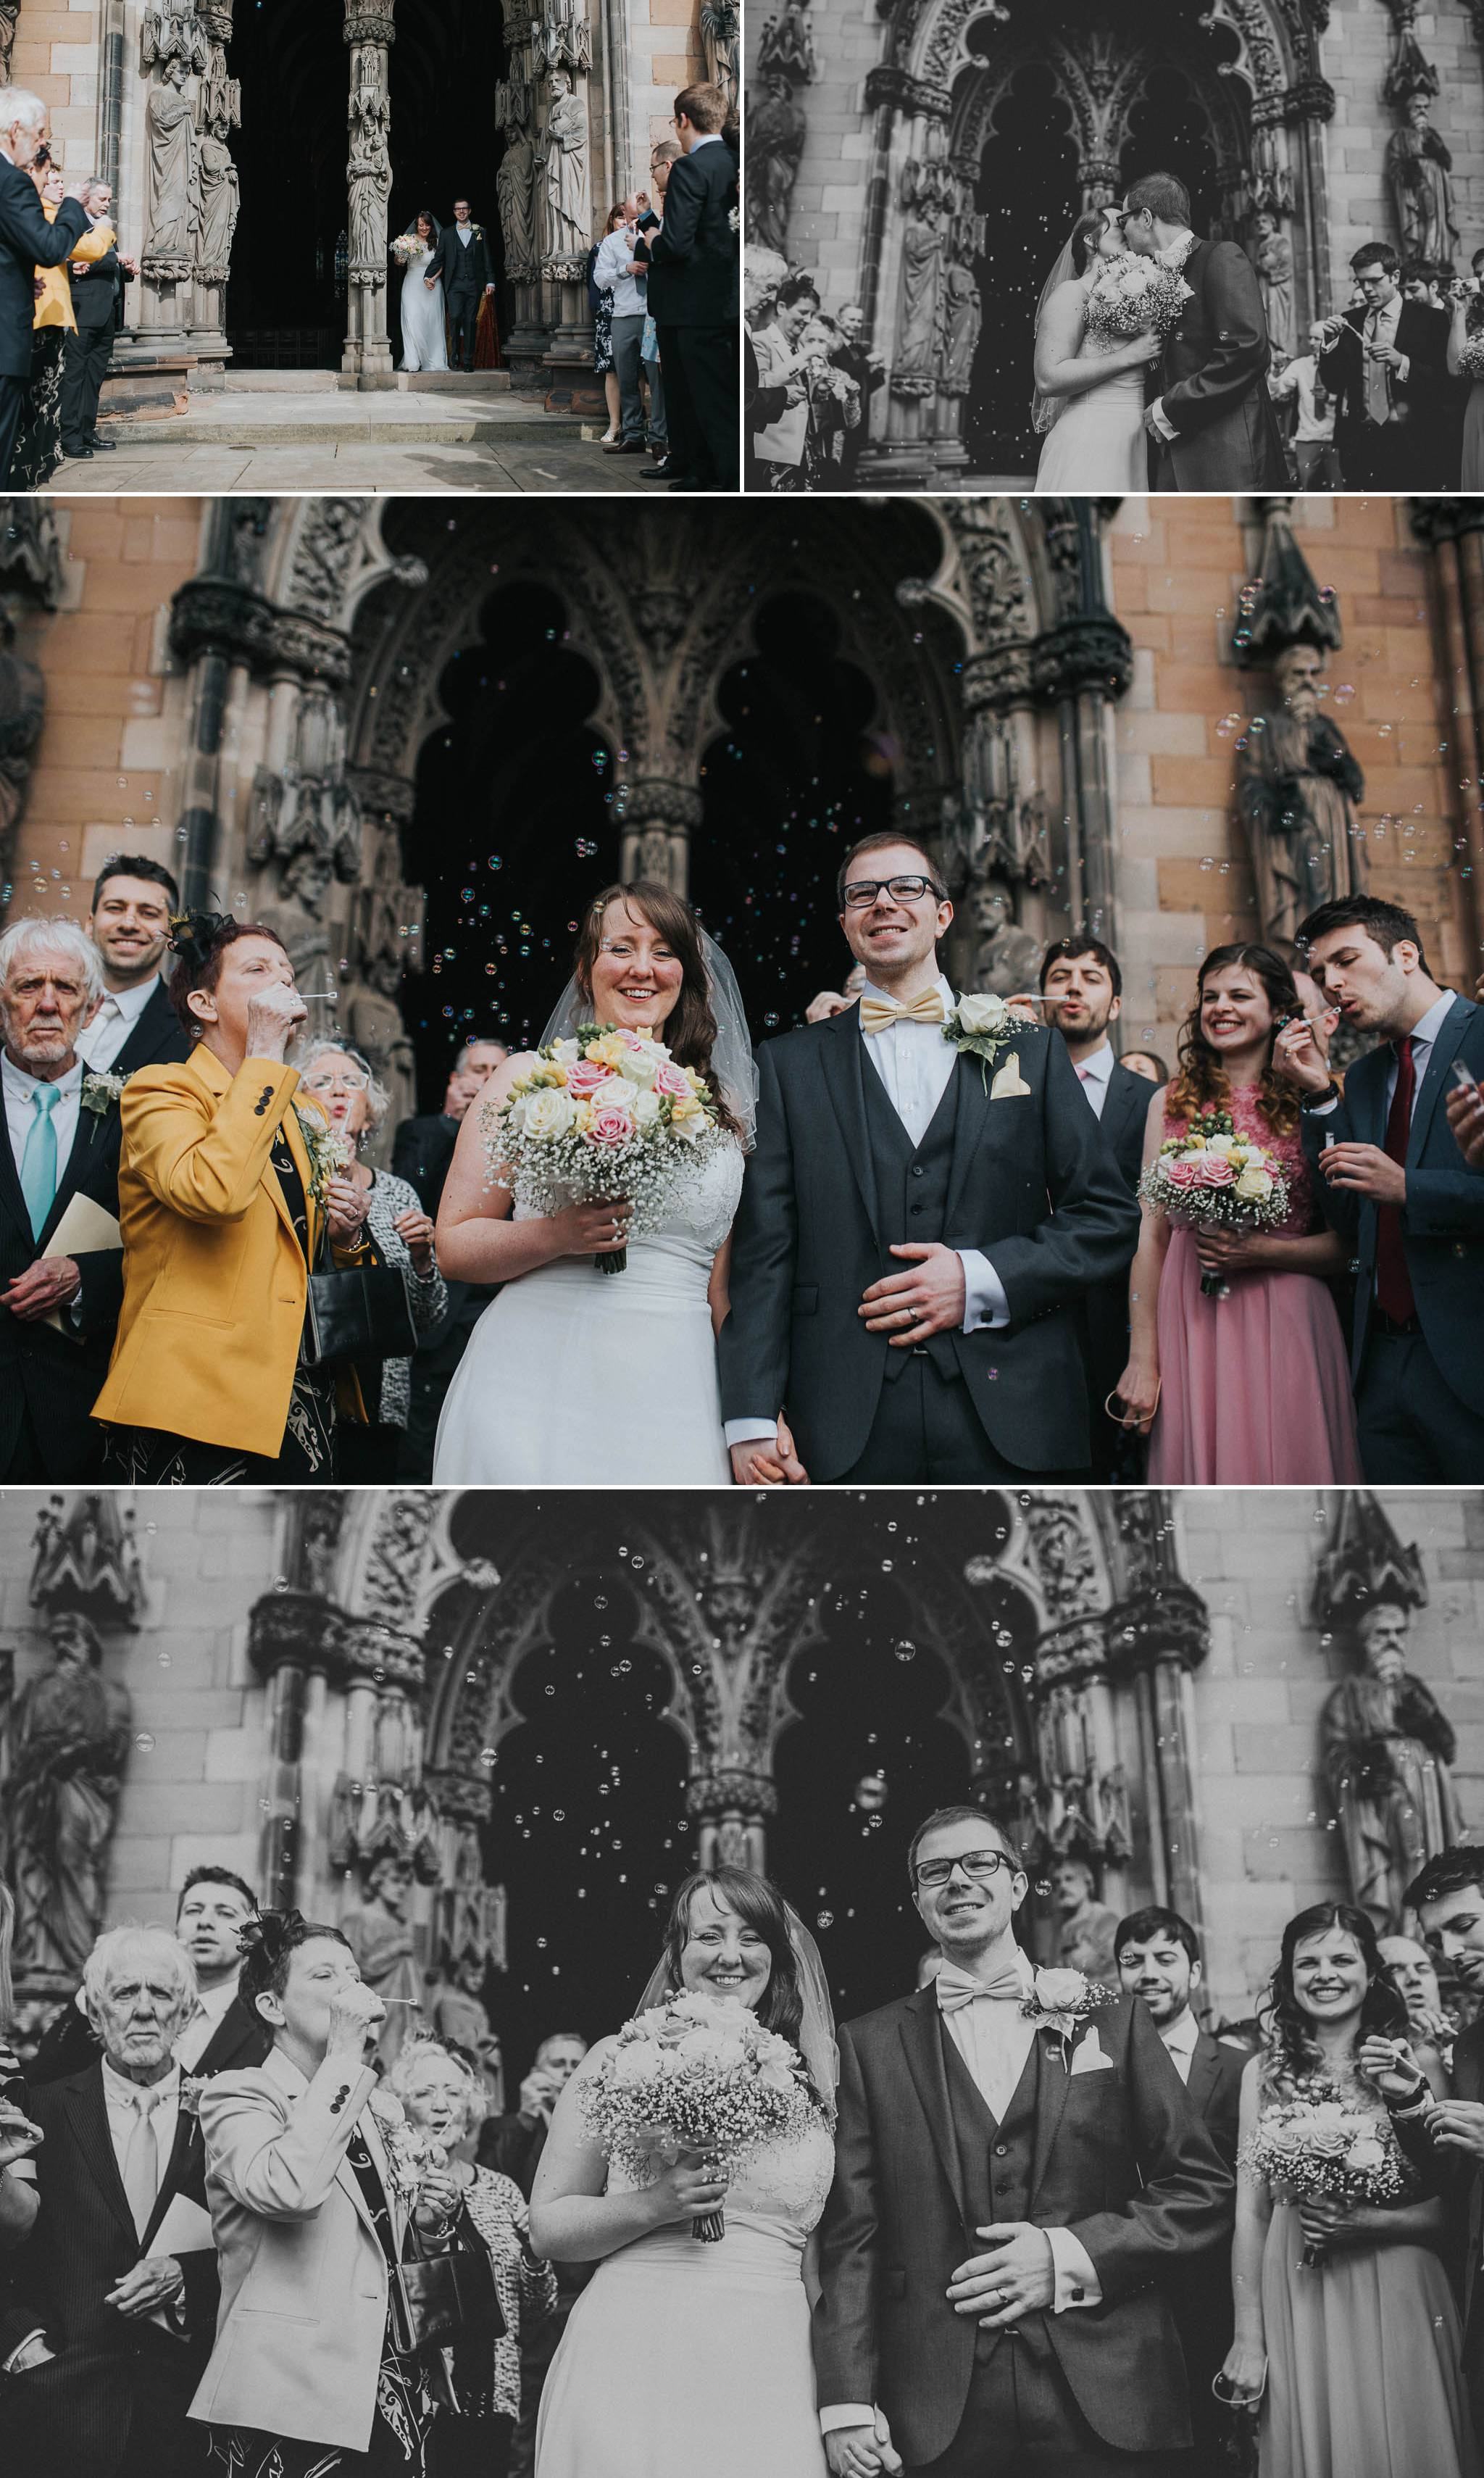 lichfield-cathedral-wedding-photography 13.jpg